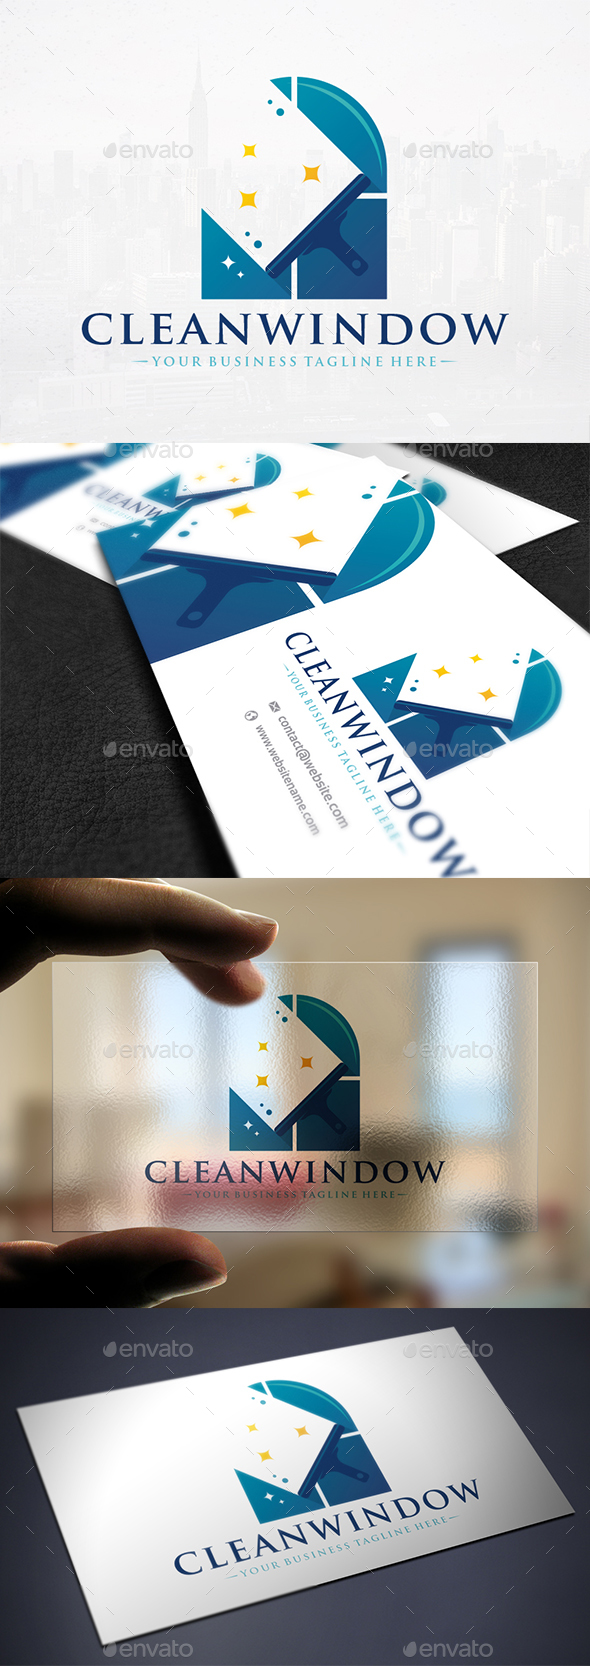 Cleaning Glass Logo Design - Company Logo Templates